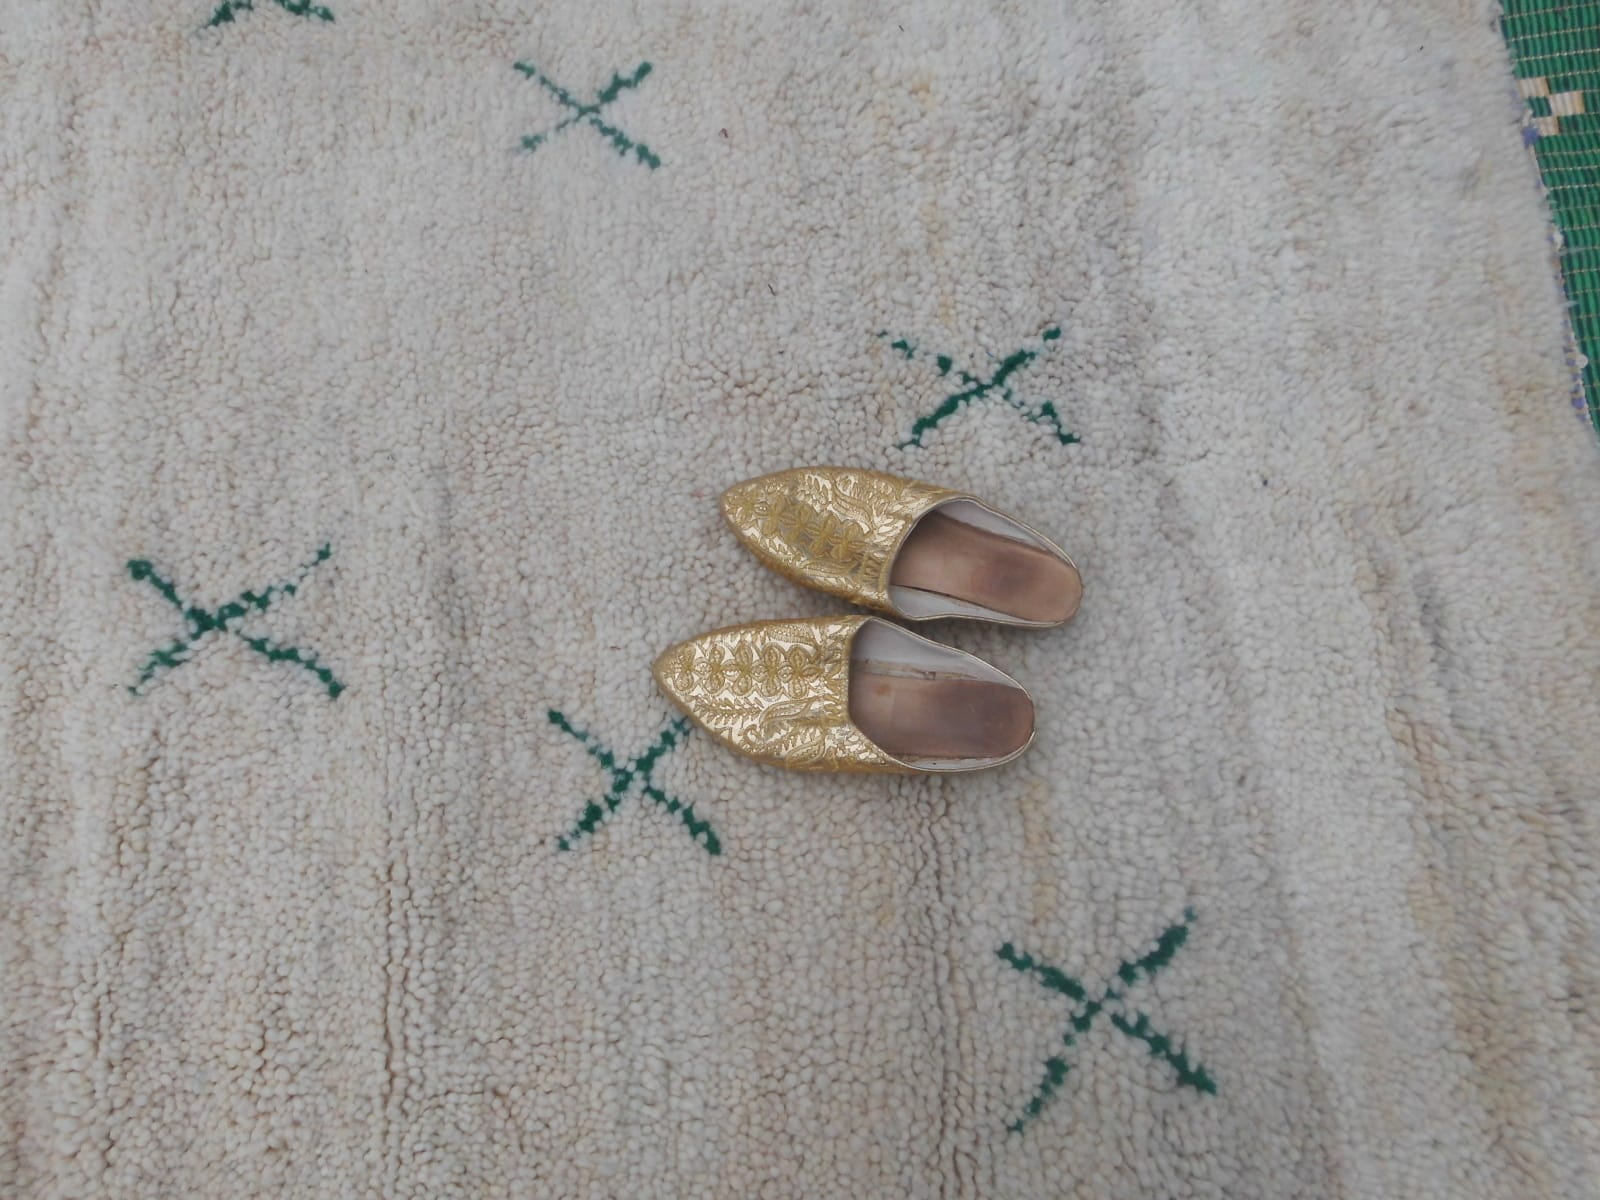 Pile Knot Rug  Green, White Morocco